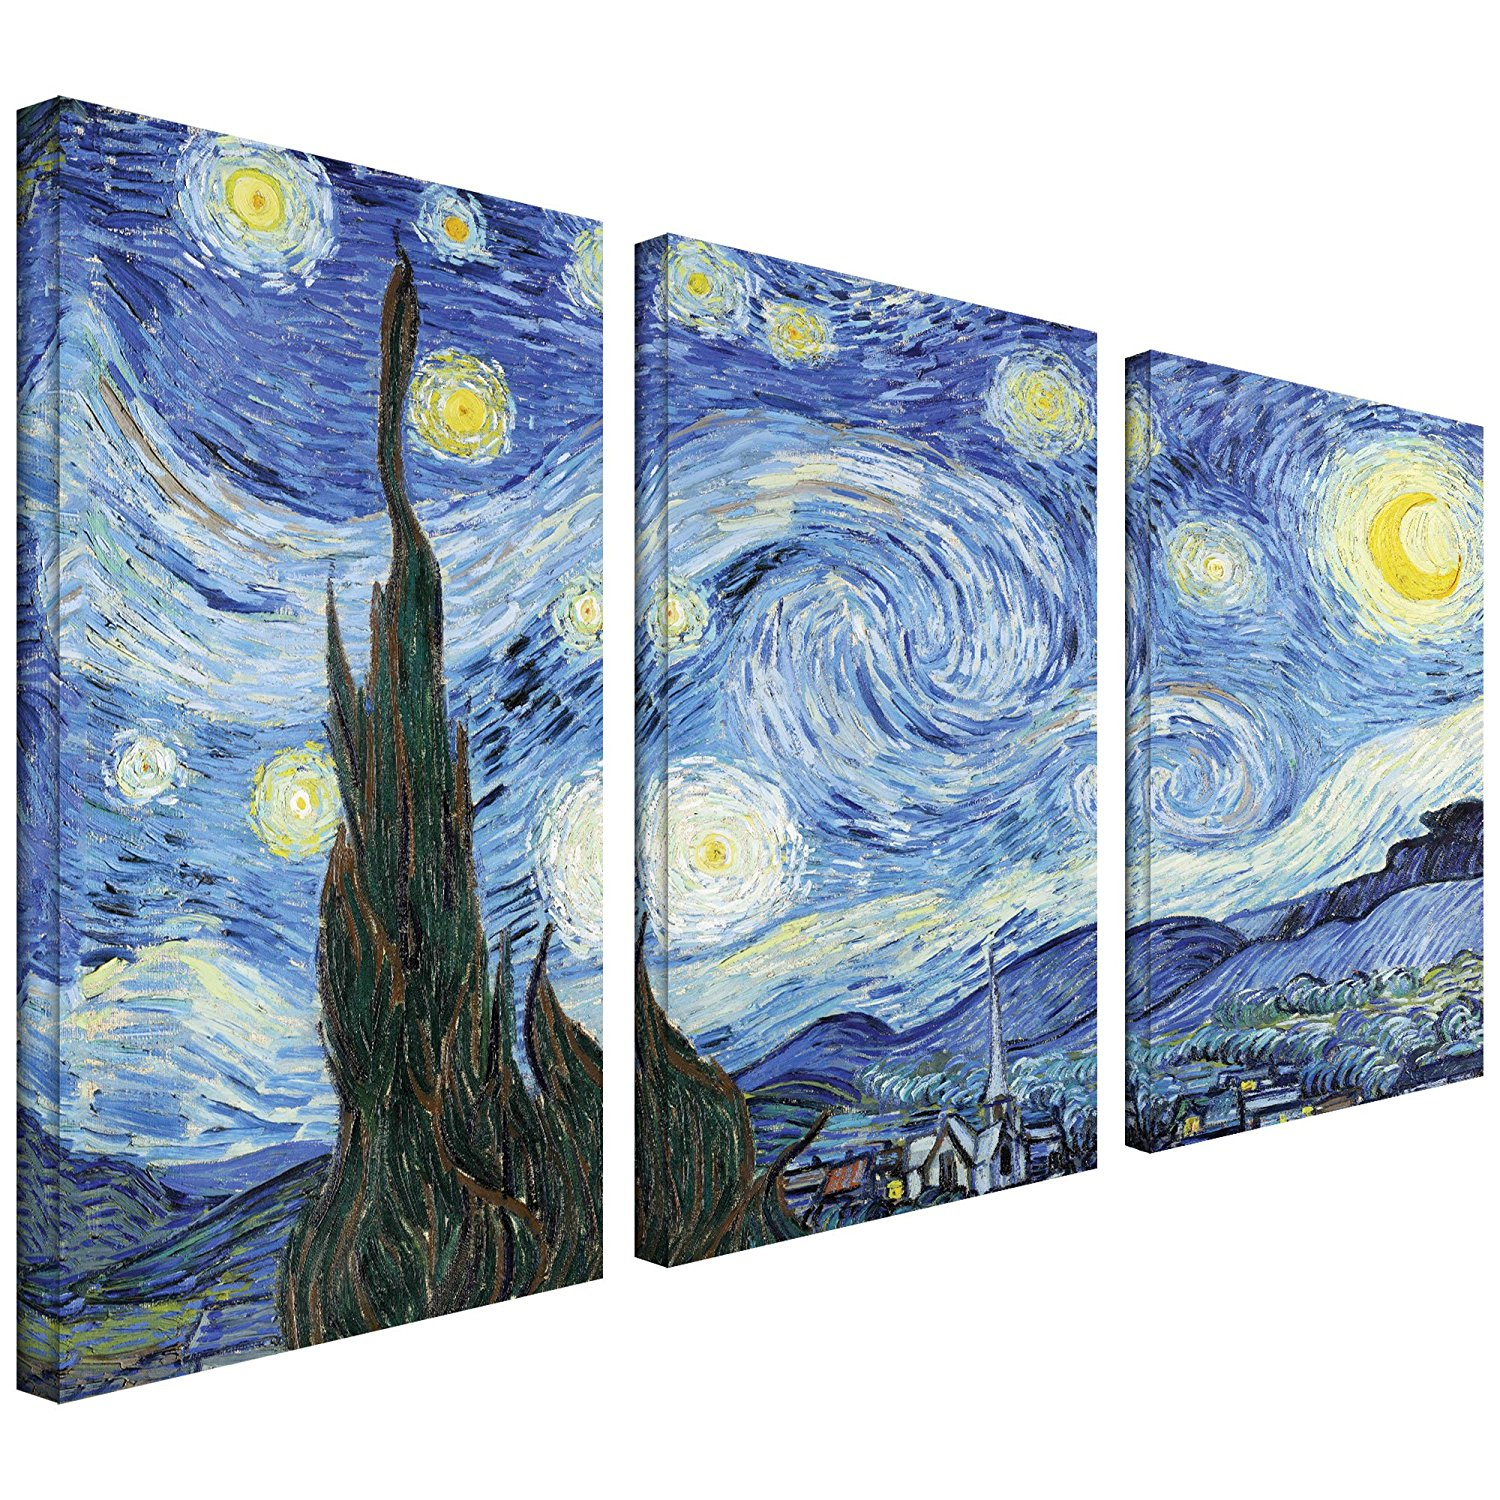 gallery wrapped canvas art prints